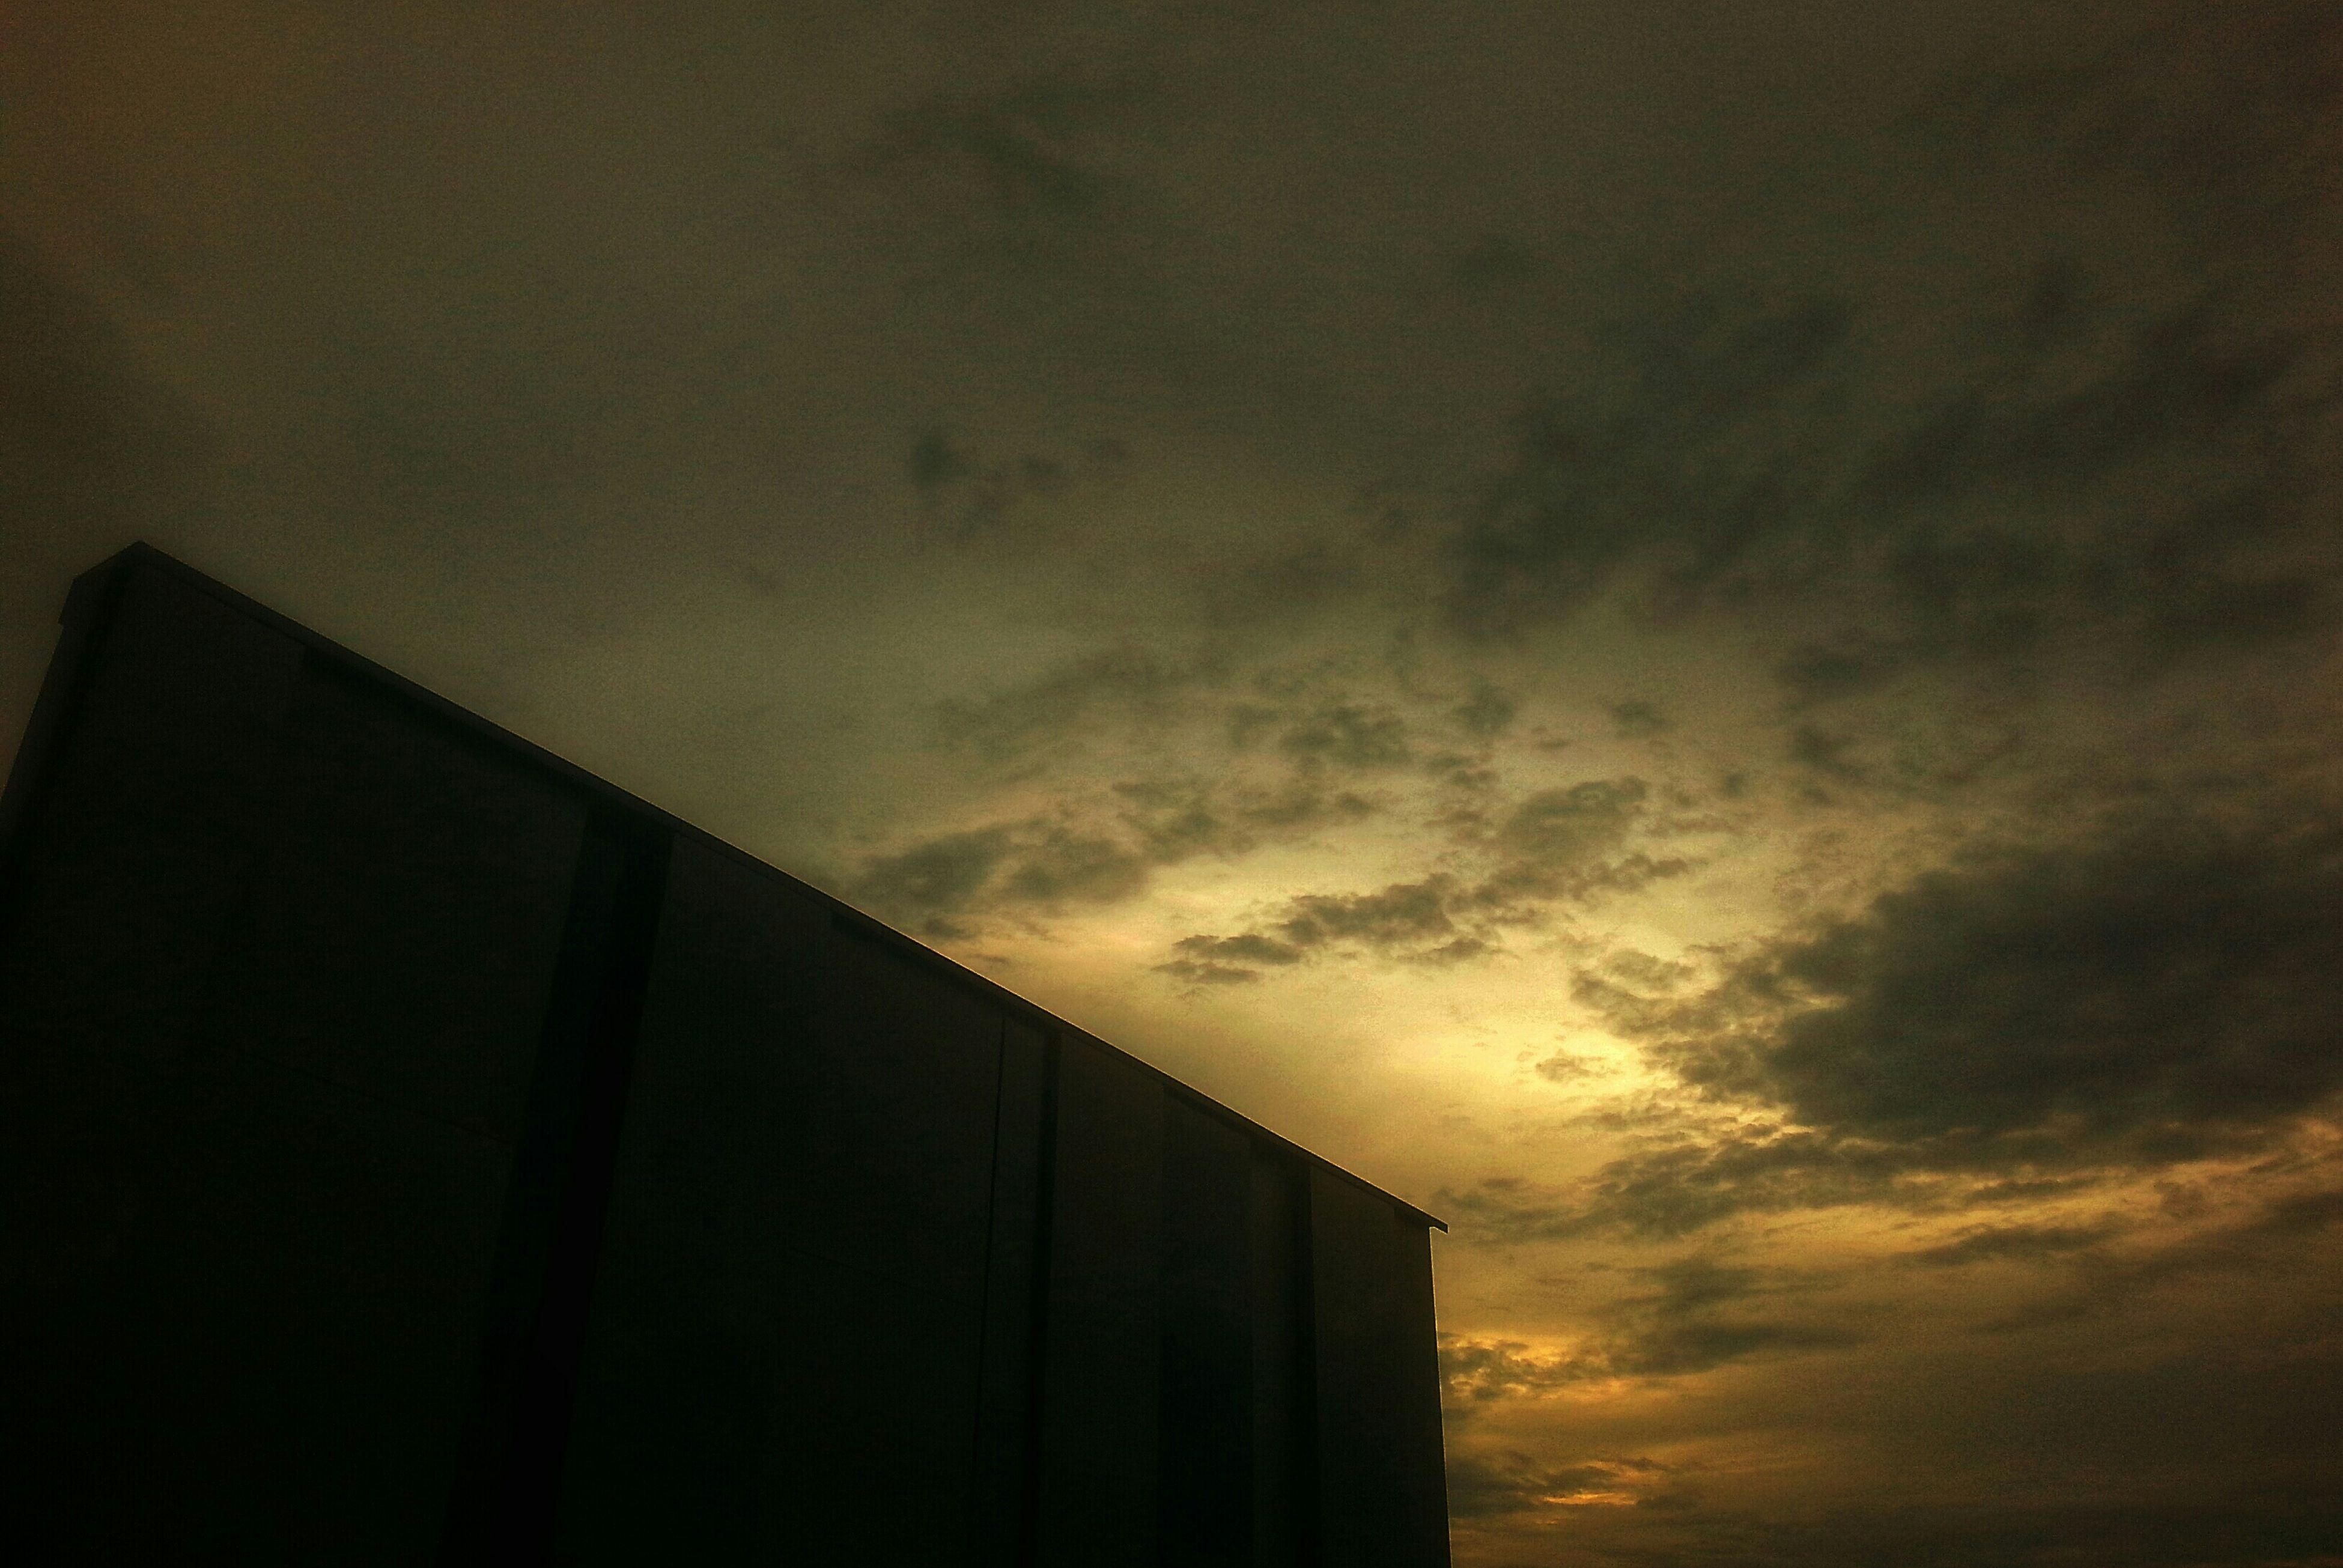 architecture, built structure, building exterior, low angle view, sky, sunset, cloud - sky, building, cloudy, silhouette, high section, cloud, residential structure, city, outdoors, dusk, orange color, residential building, house, no people